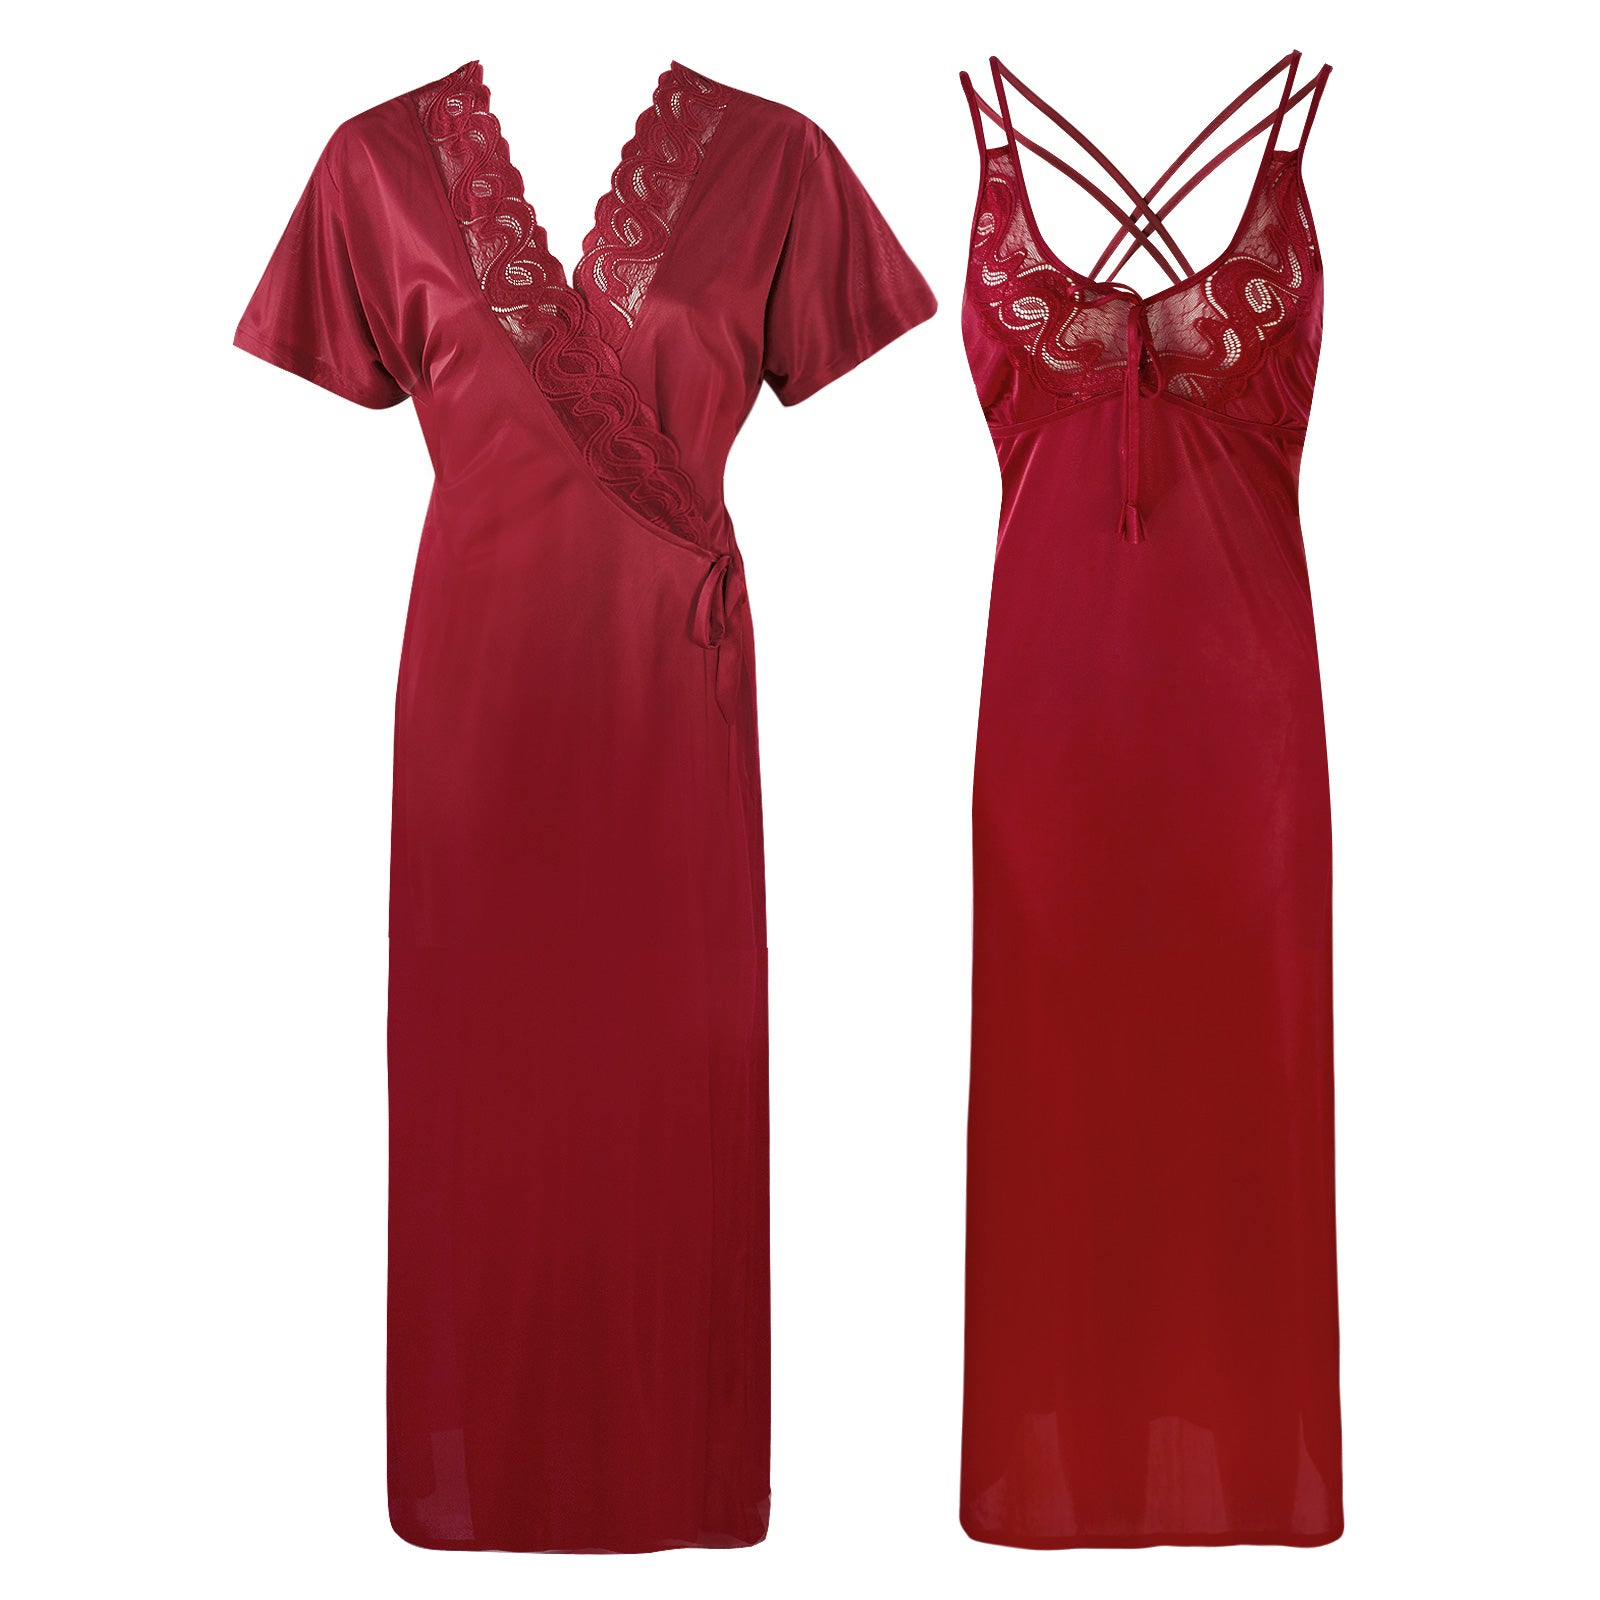 Womens Plus Size Nightdress 2 Pcs Set [colour]- Hautie UK, #Nightfashion | #Underfashion SIZE 16 18 20 DEEP RED